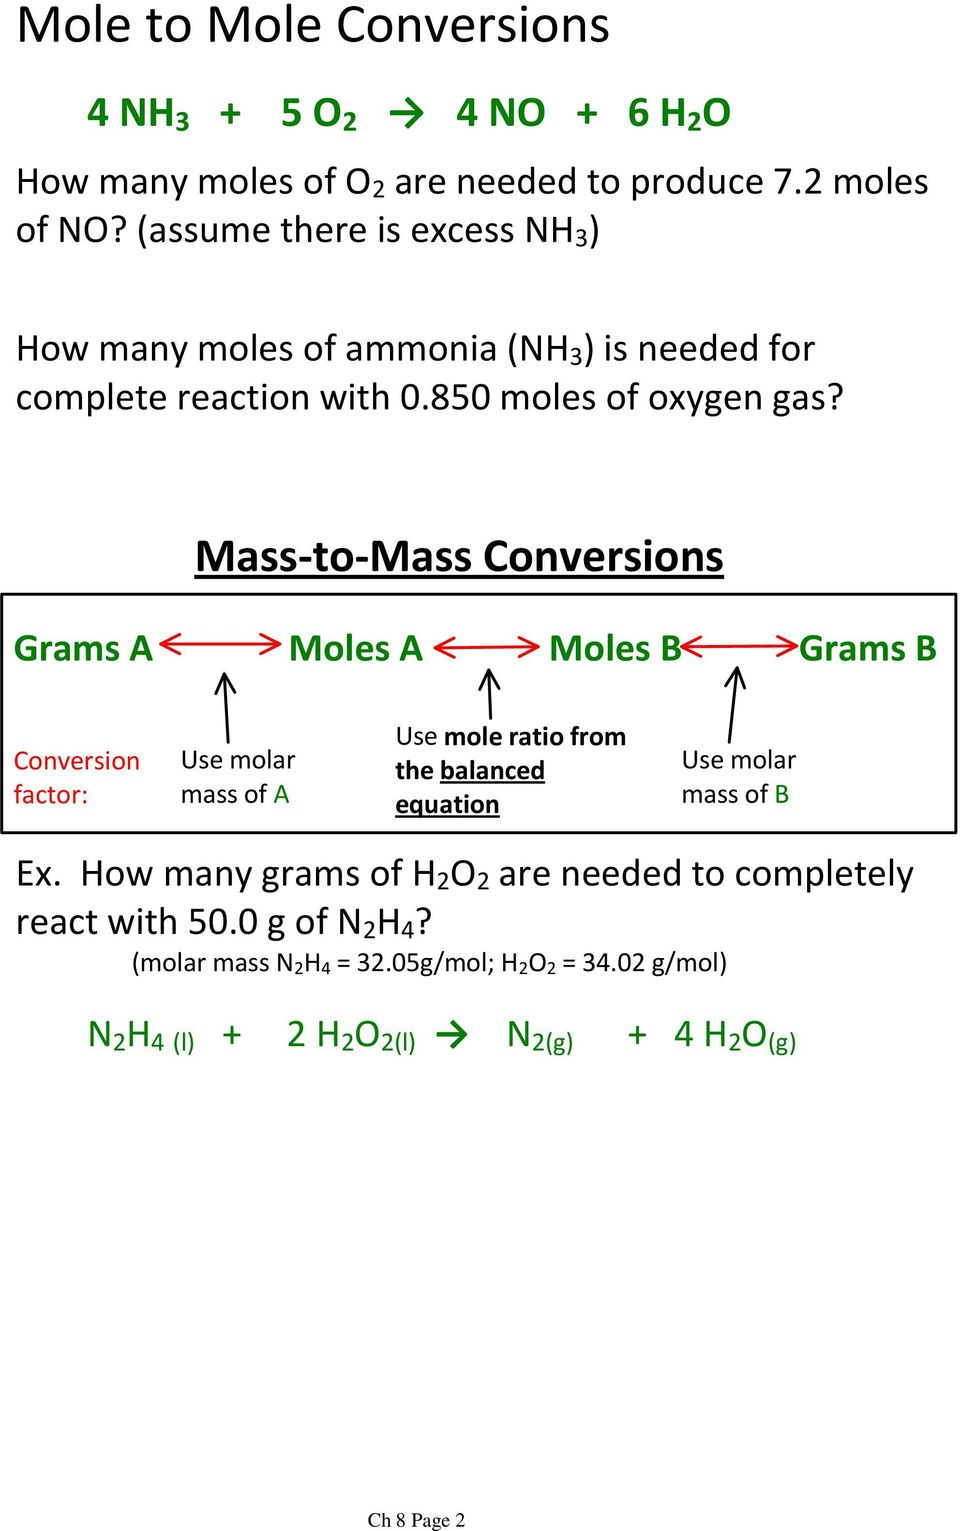 Mass-to-Mass Conversions Grams A Moles A Moles B Grams B Conversion factor: mass of A Use mole ratio from the balanced equation mass of B Ex.